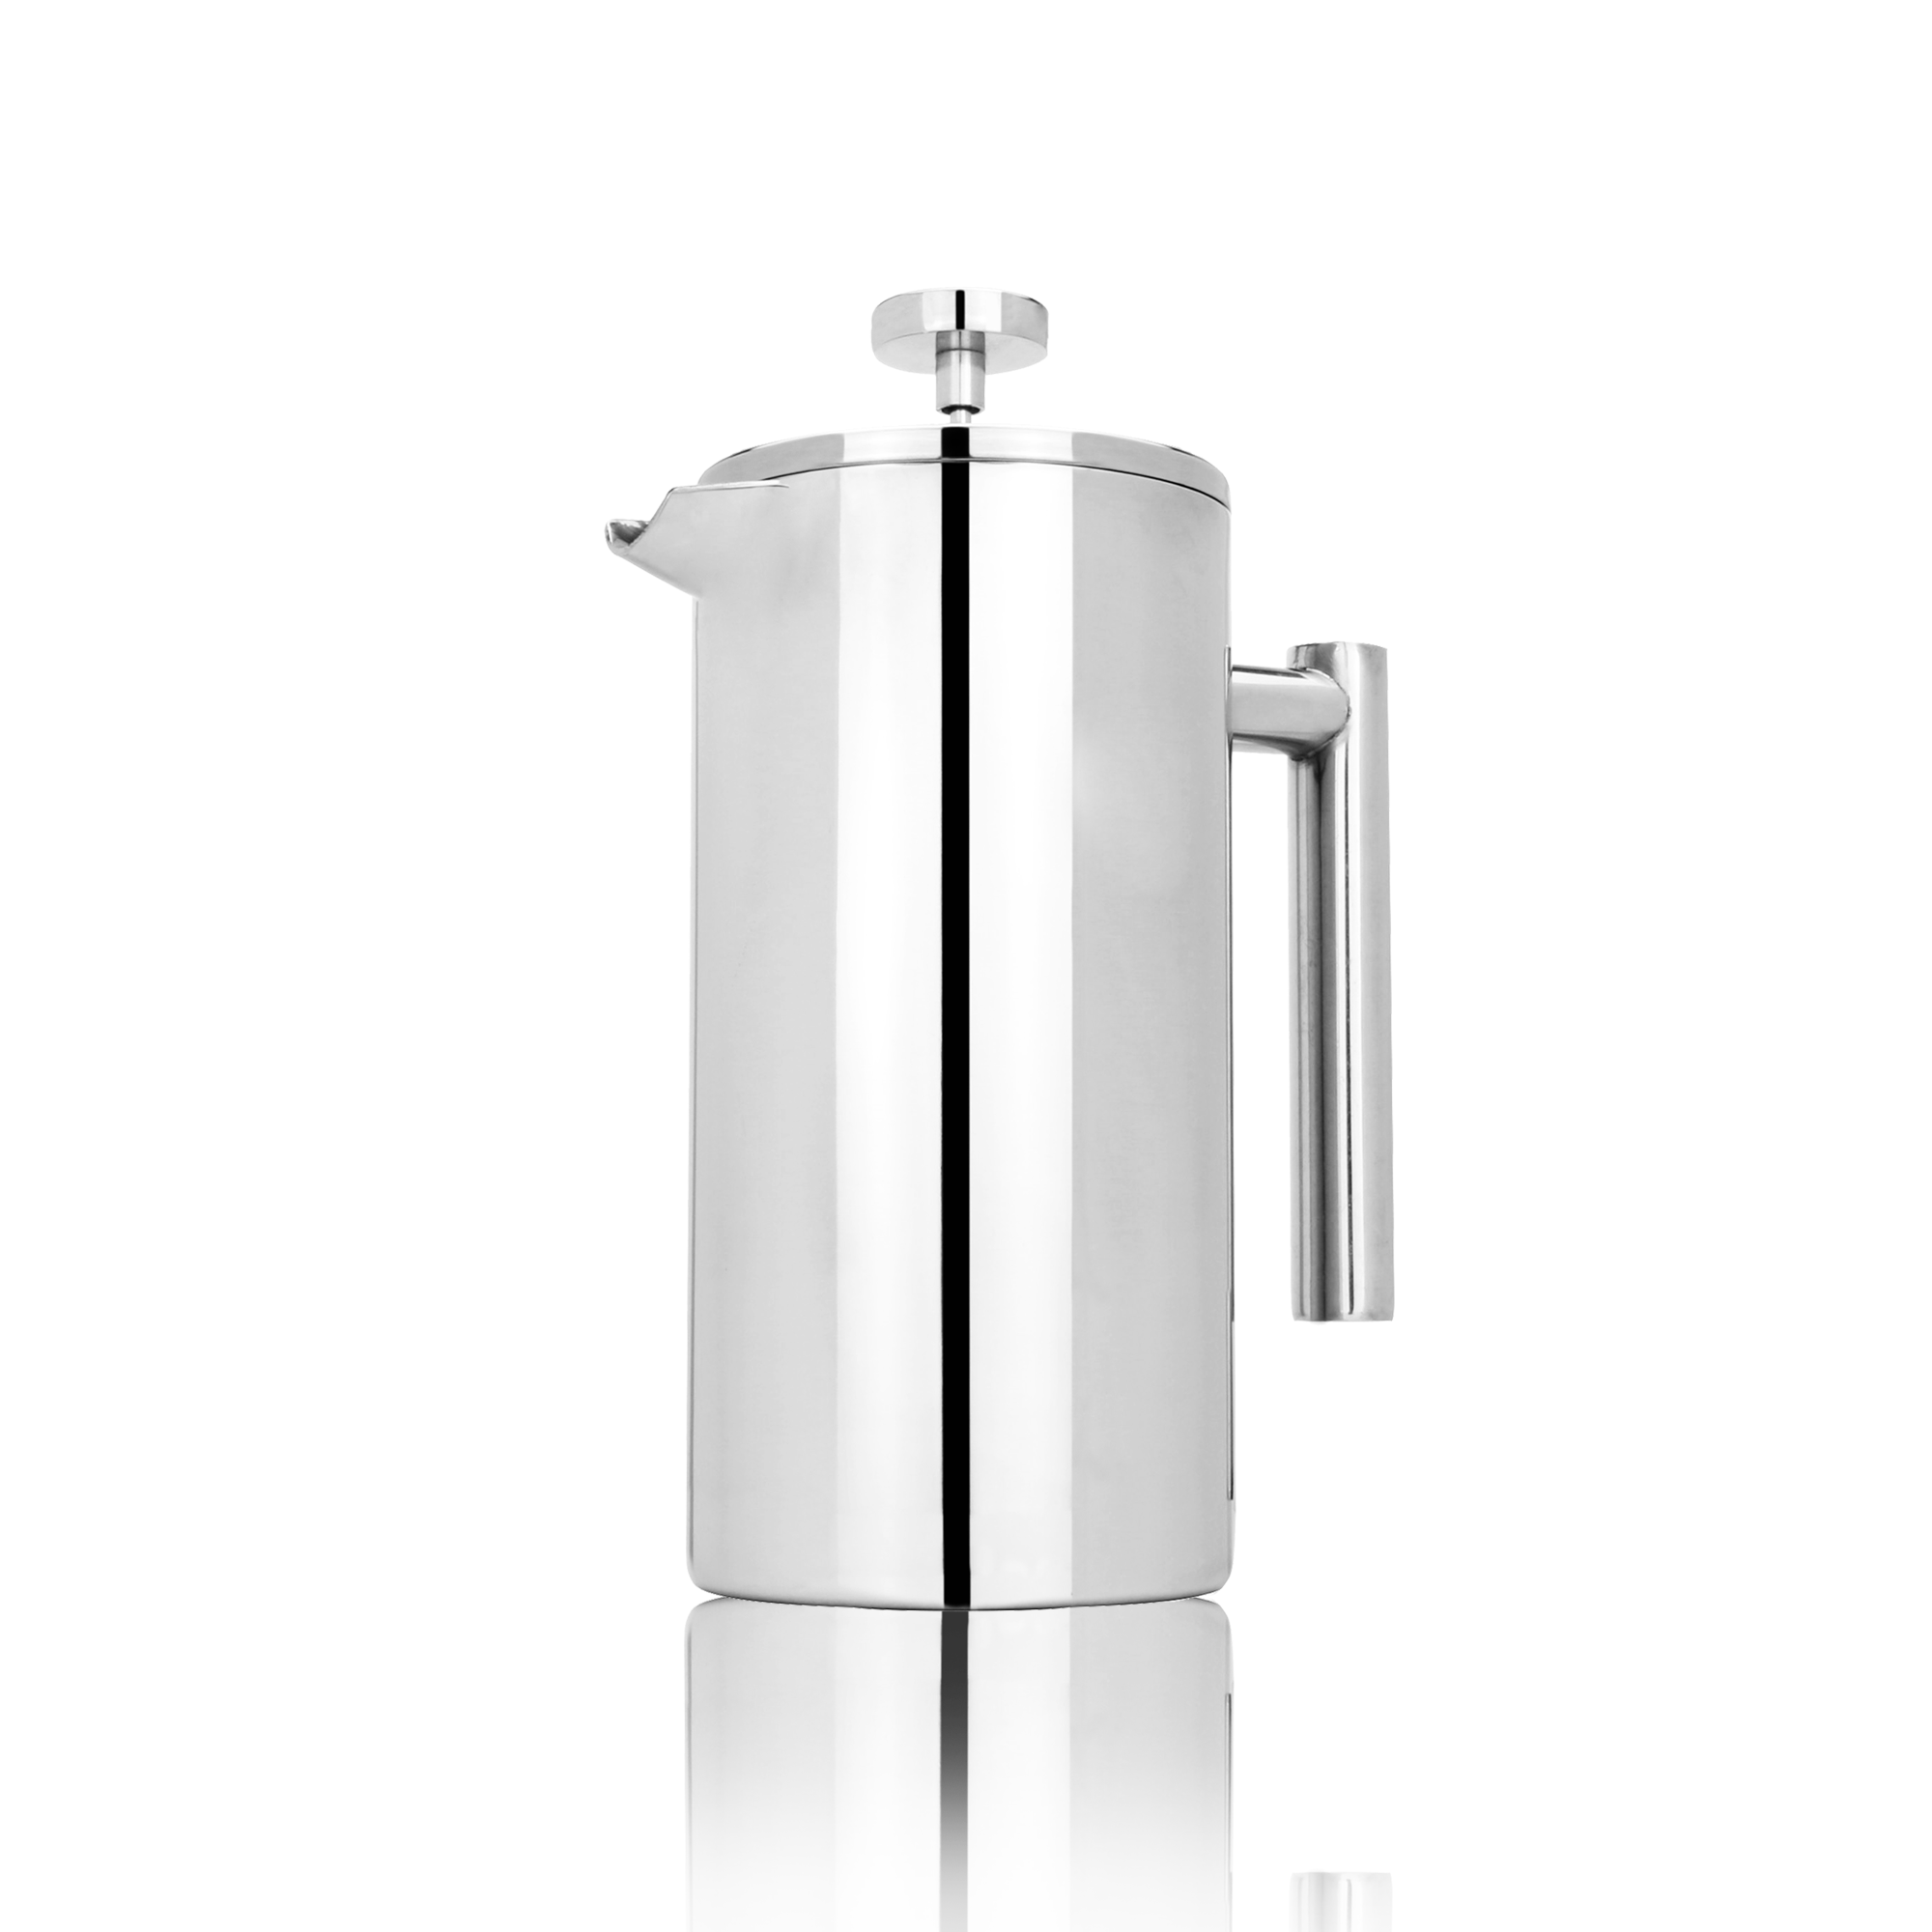 French-Press-Cafetiere-Steel-Coffee-Maker-FREE-Filters-amp-Spoons-M-amp-W miniatura 3